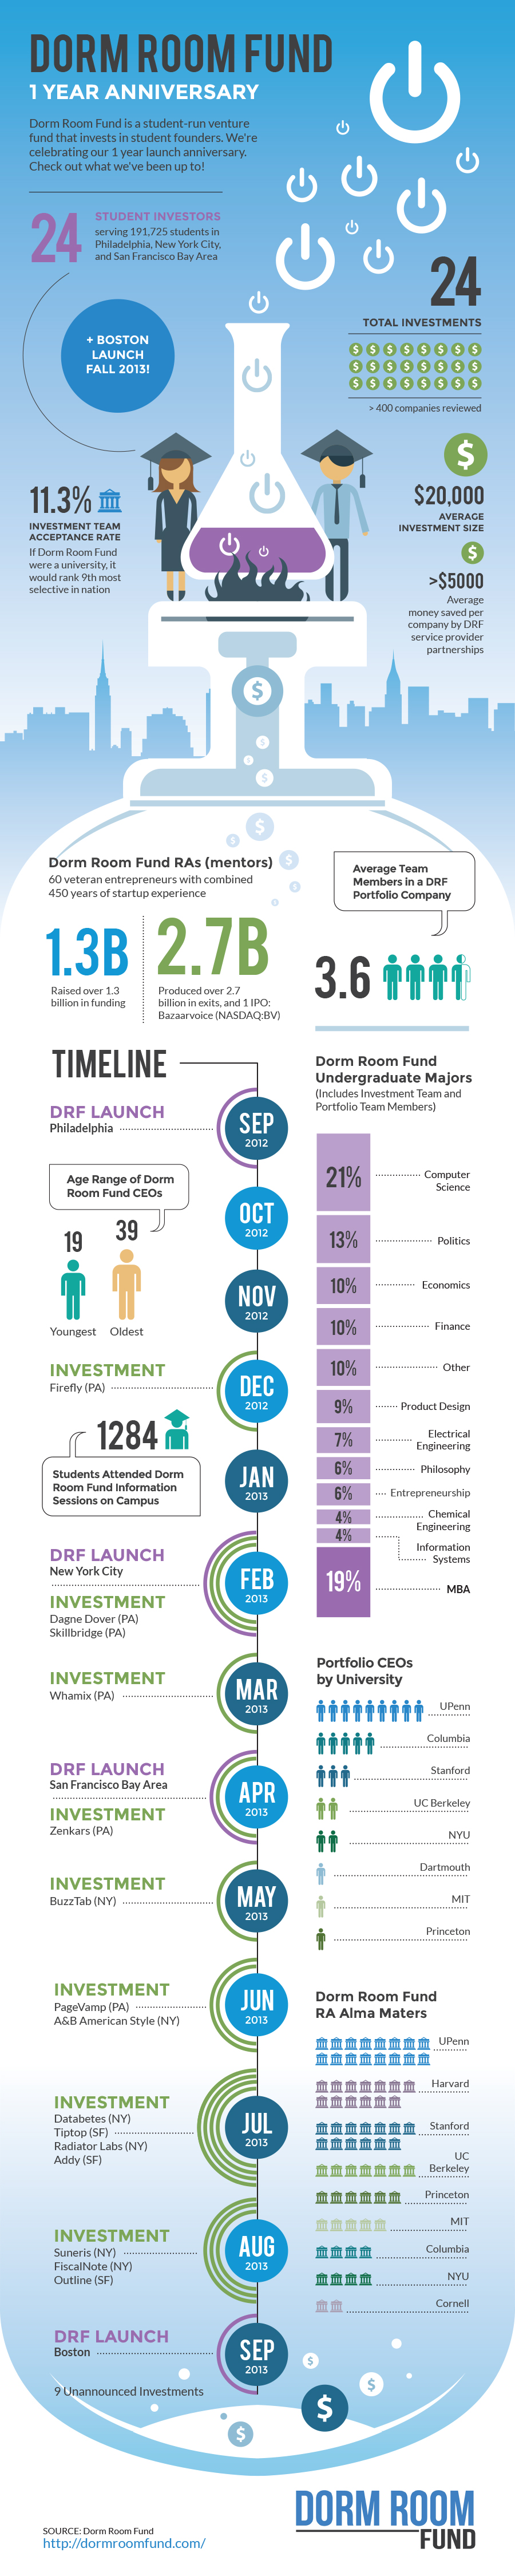 INFOGRAPHIC - Dorm Room Fund V6